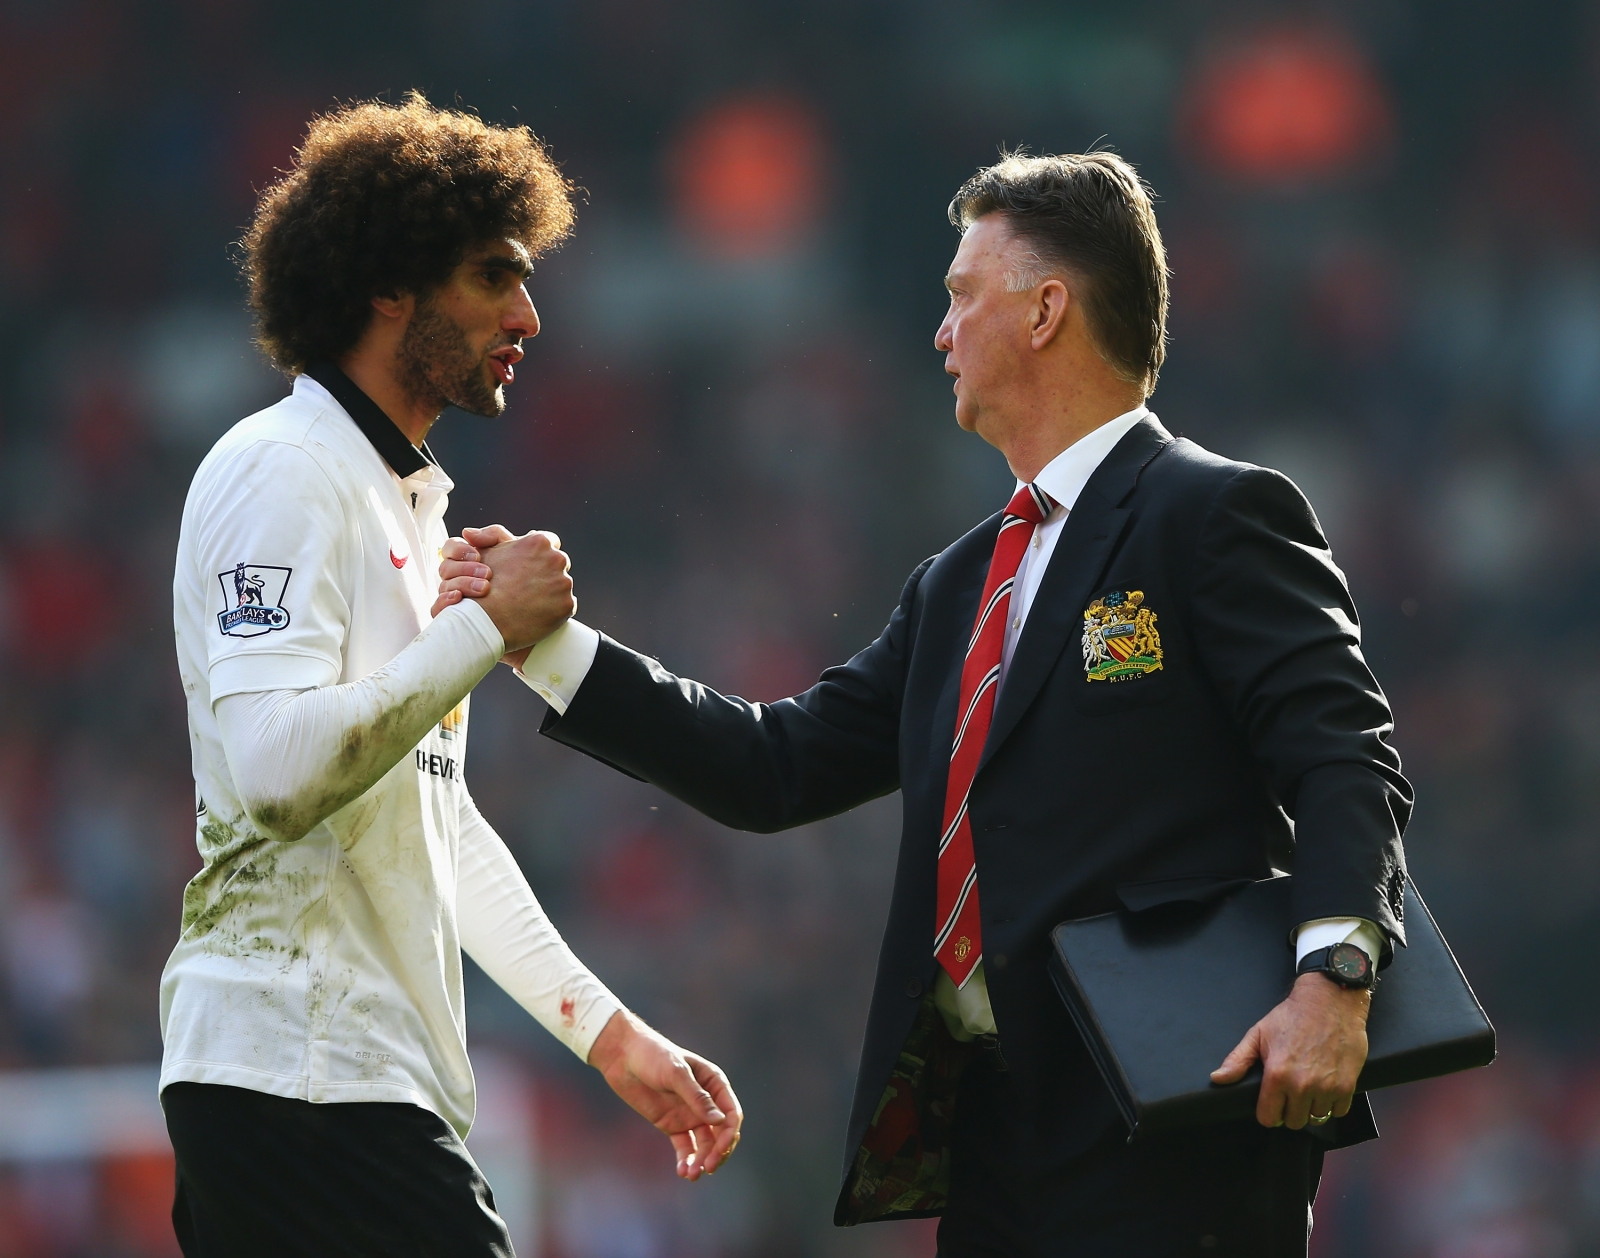 Fellaini and van Gaal